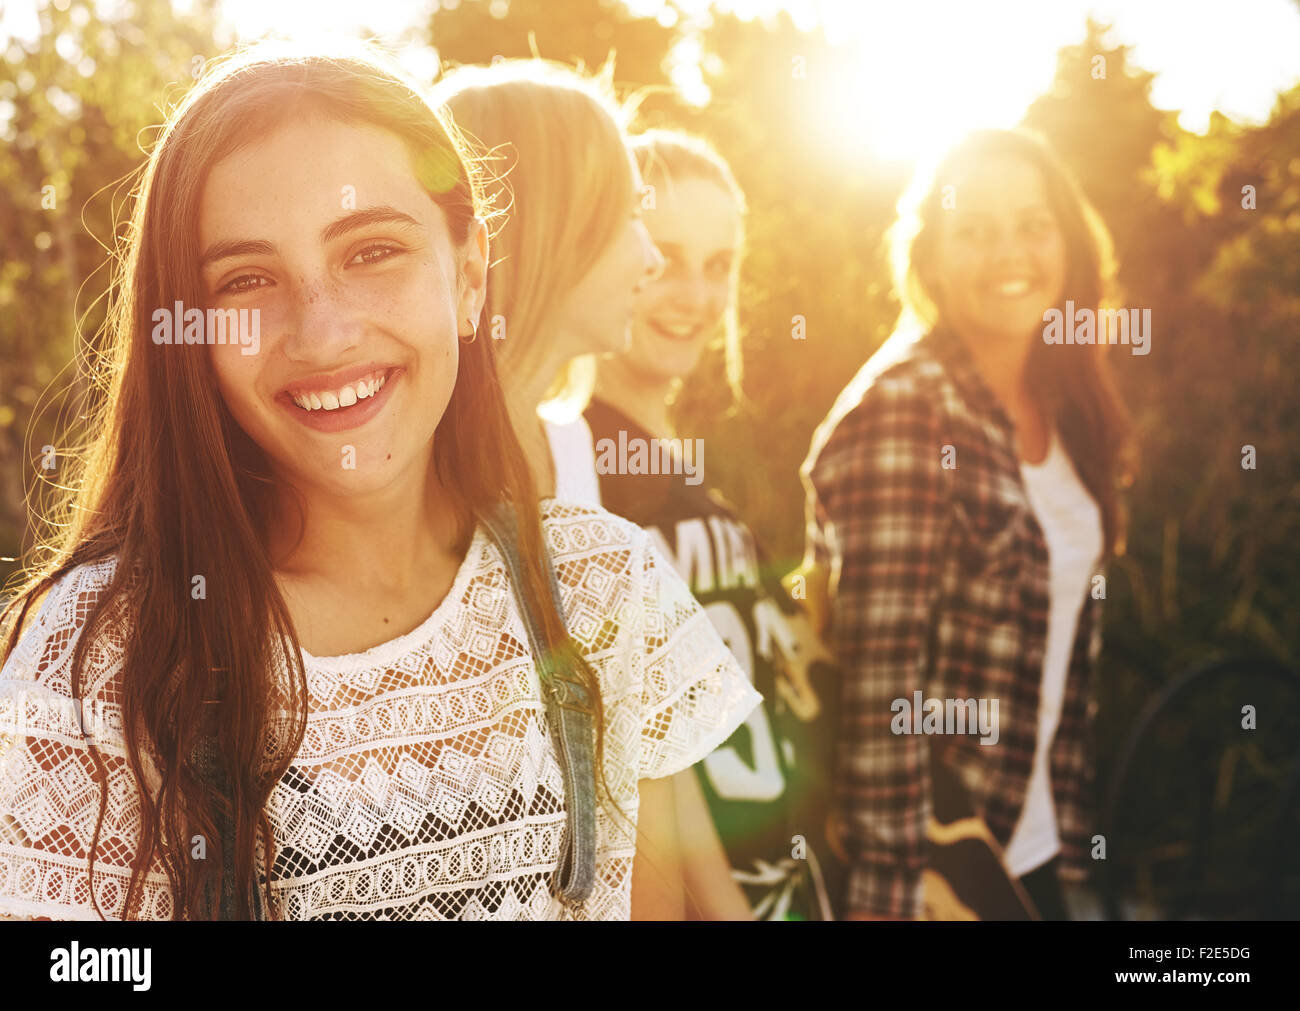 Portrait de groupe d'amis, un smiling at camera Photo Stock